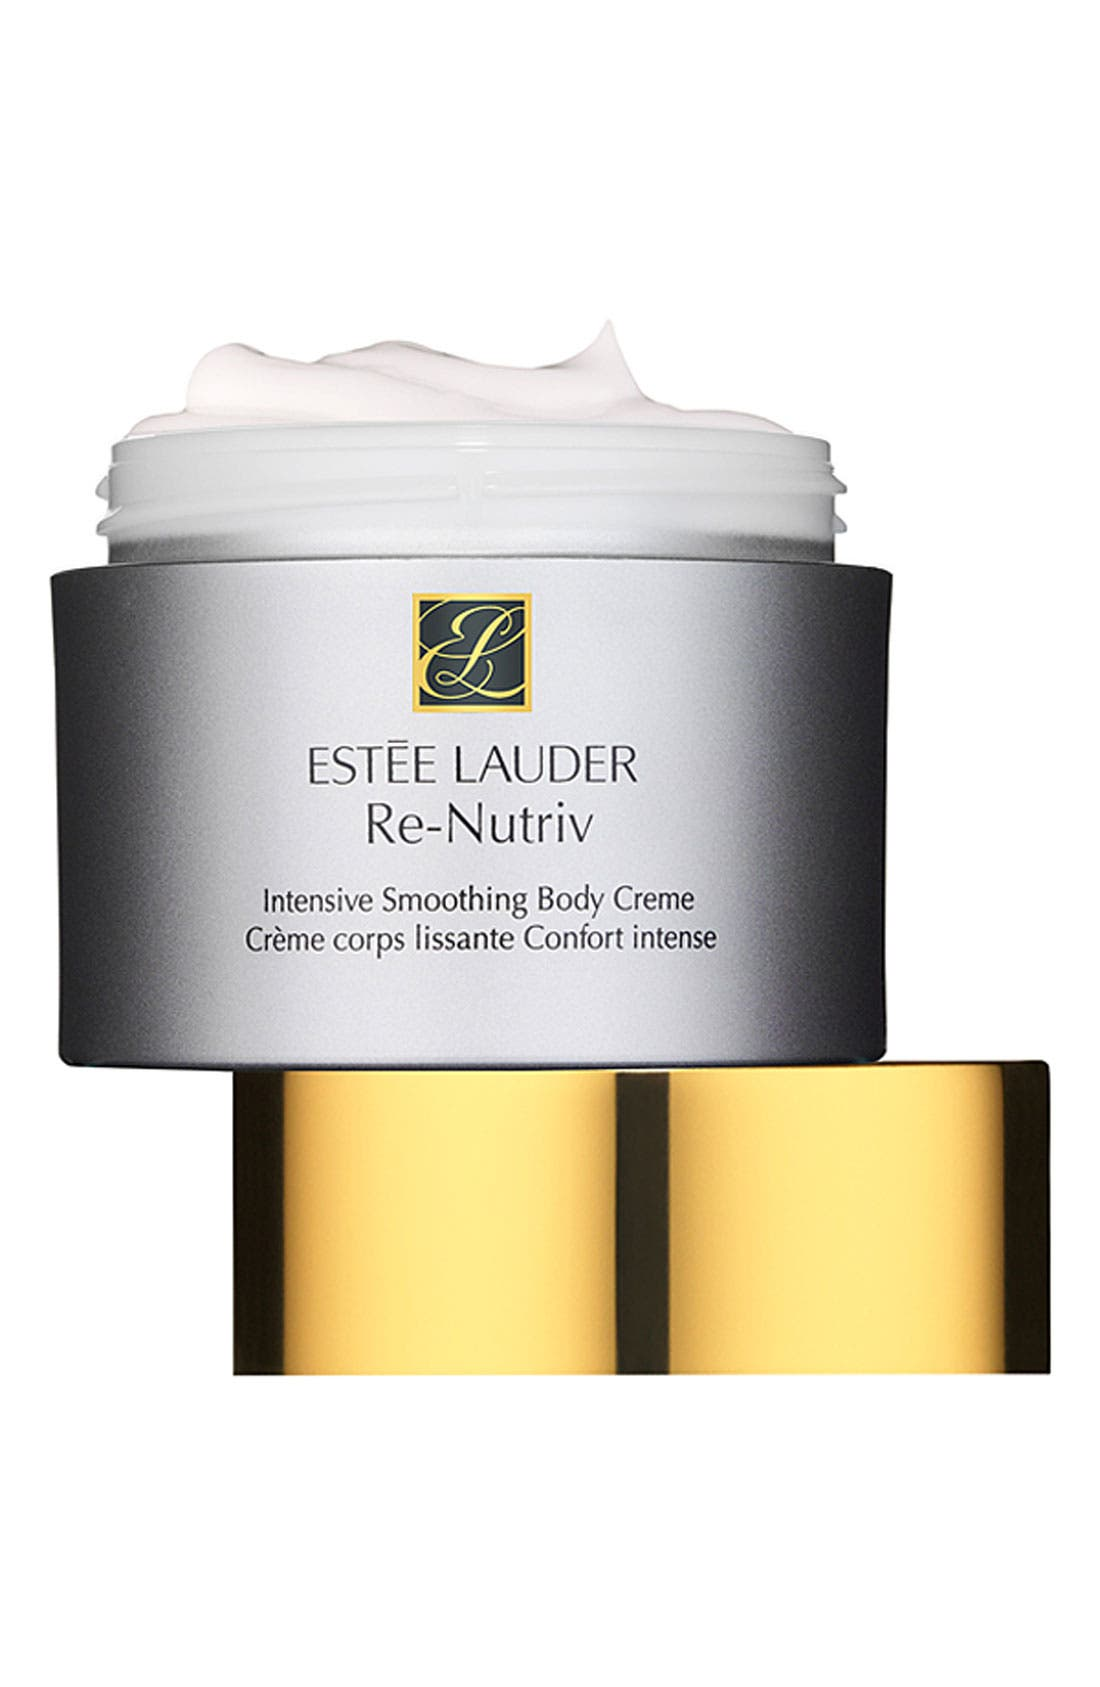 Estée Lauder Re-Nutriv Intensive Smoothing Body Creme